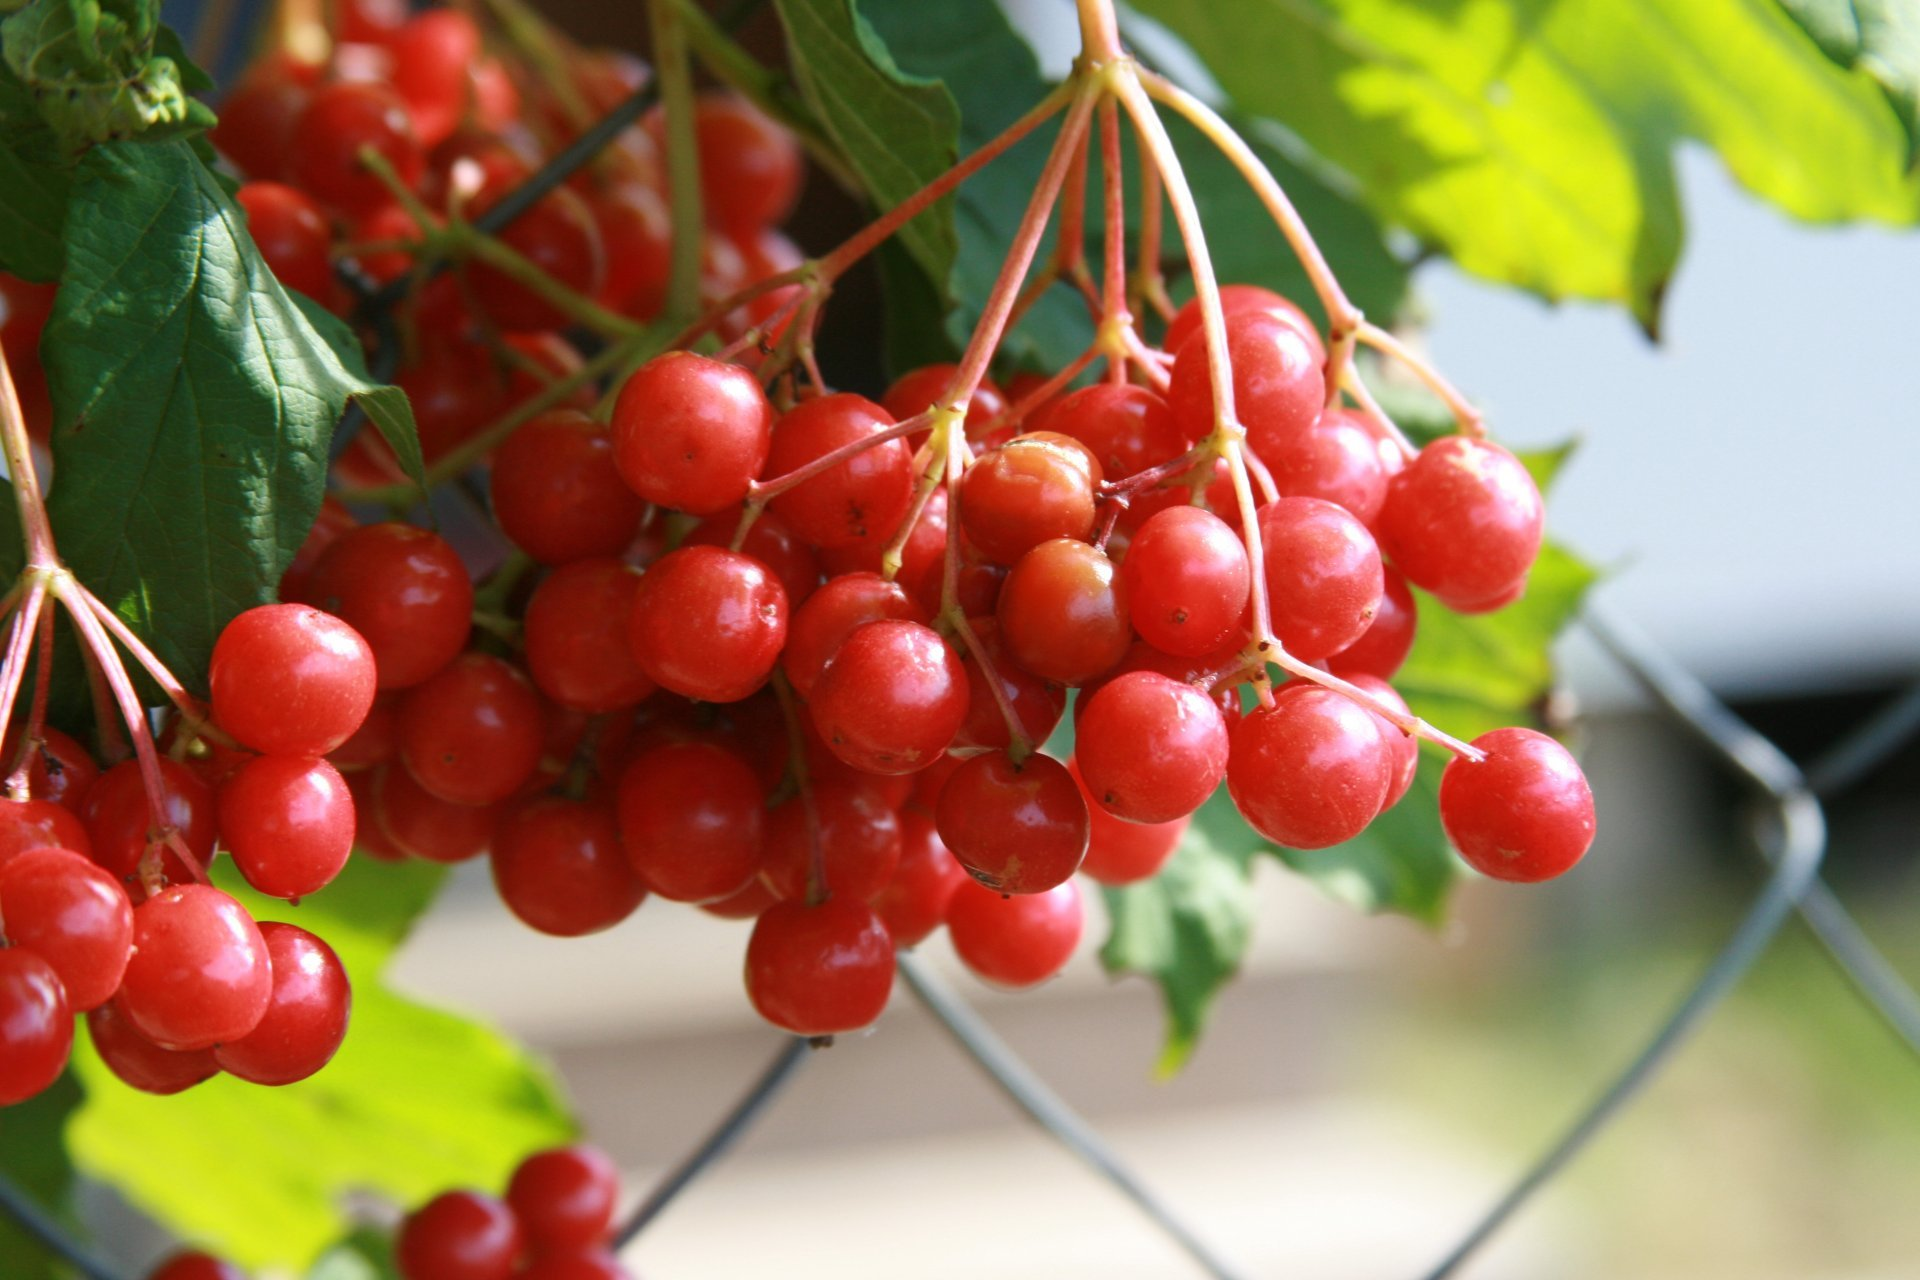 background-wallpaper-close-up-nature-kalina-plant-berries-village-autumn-red